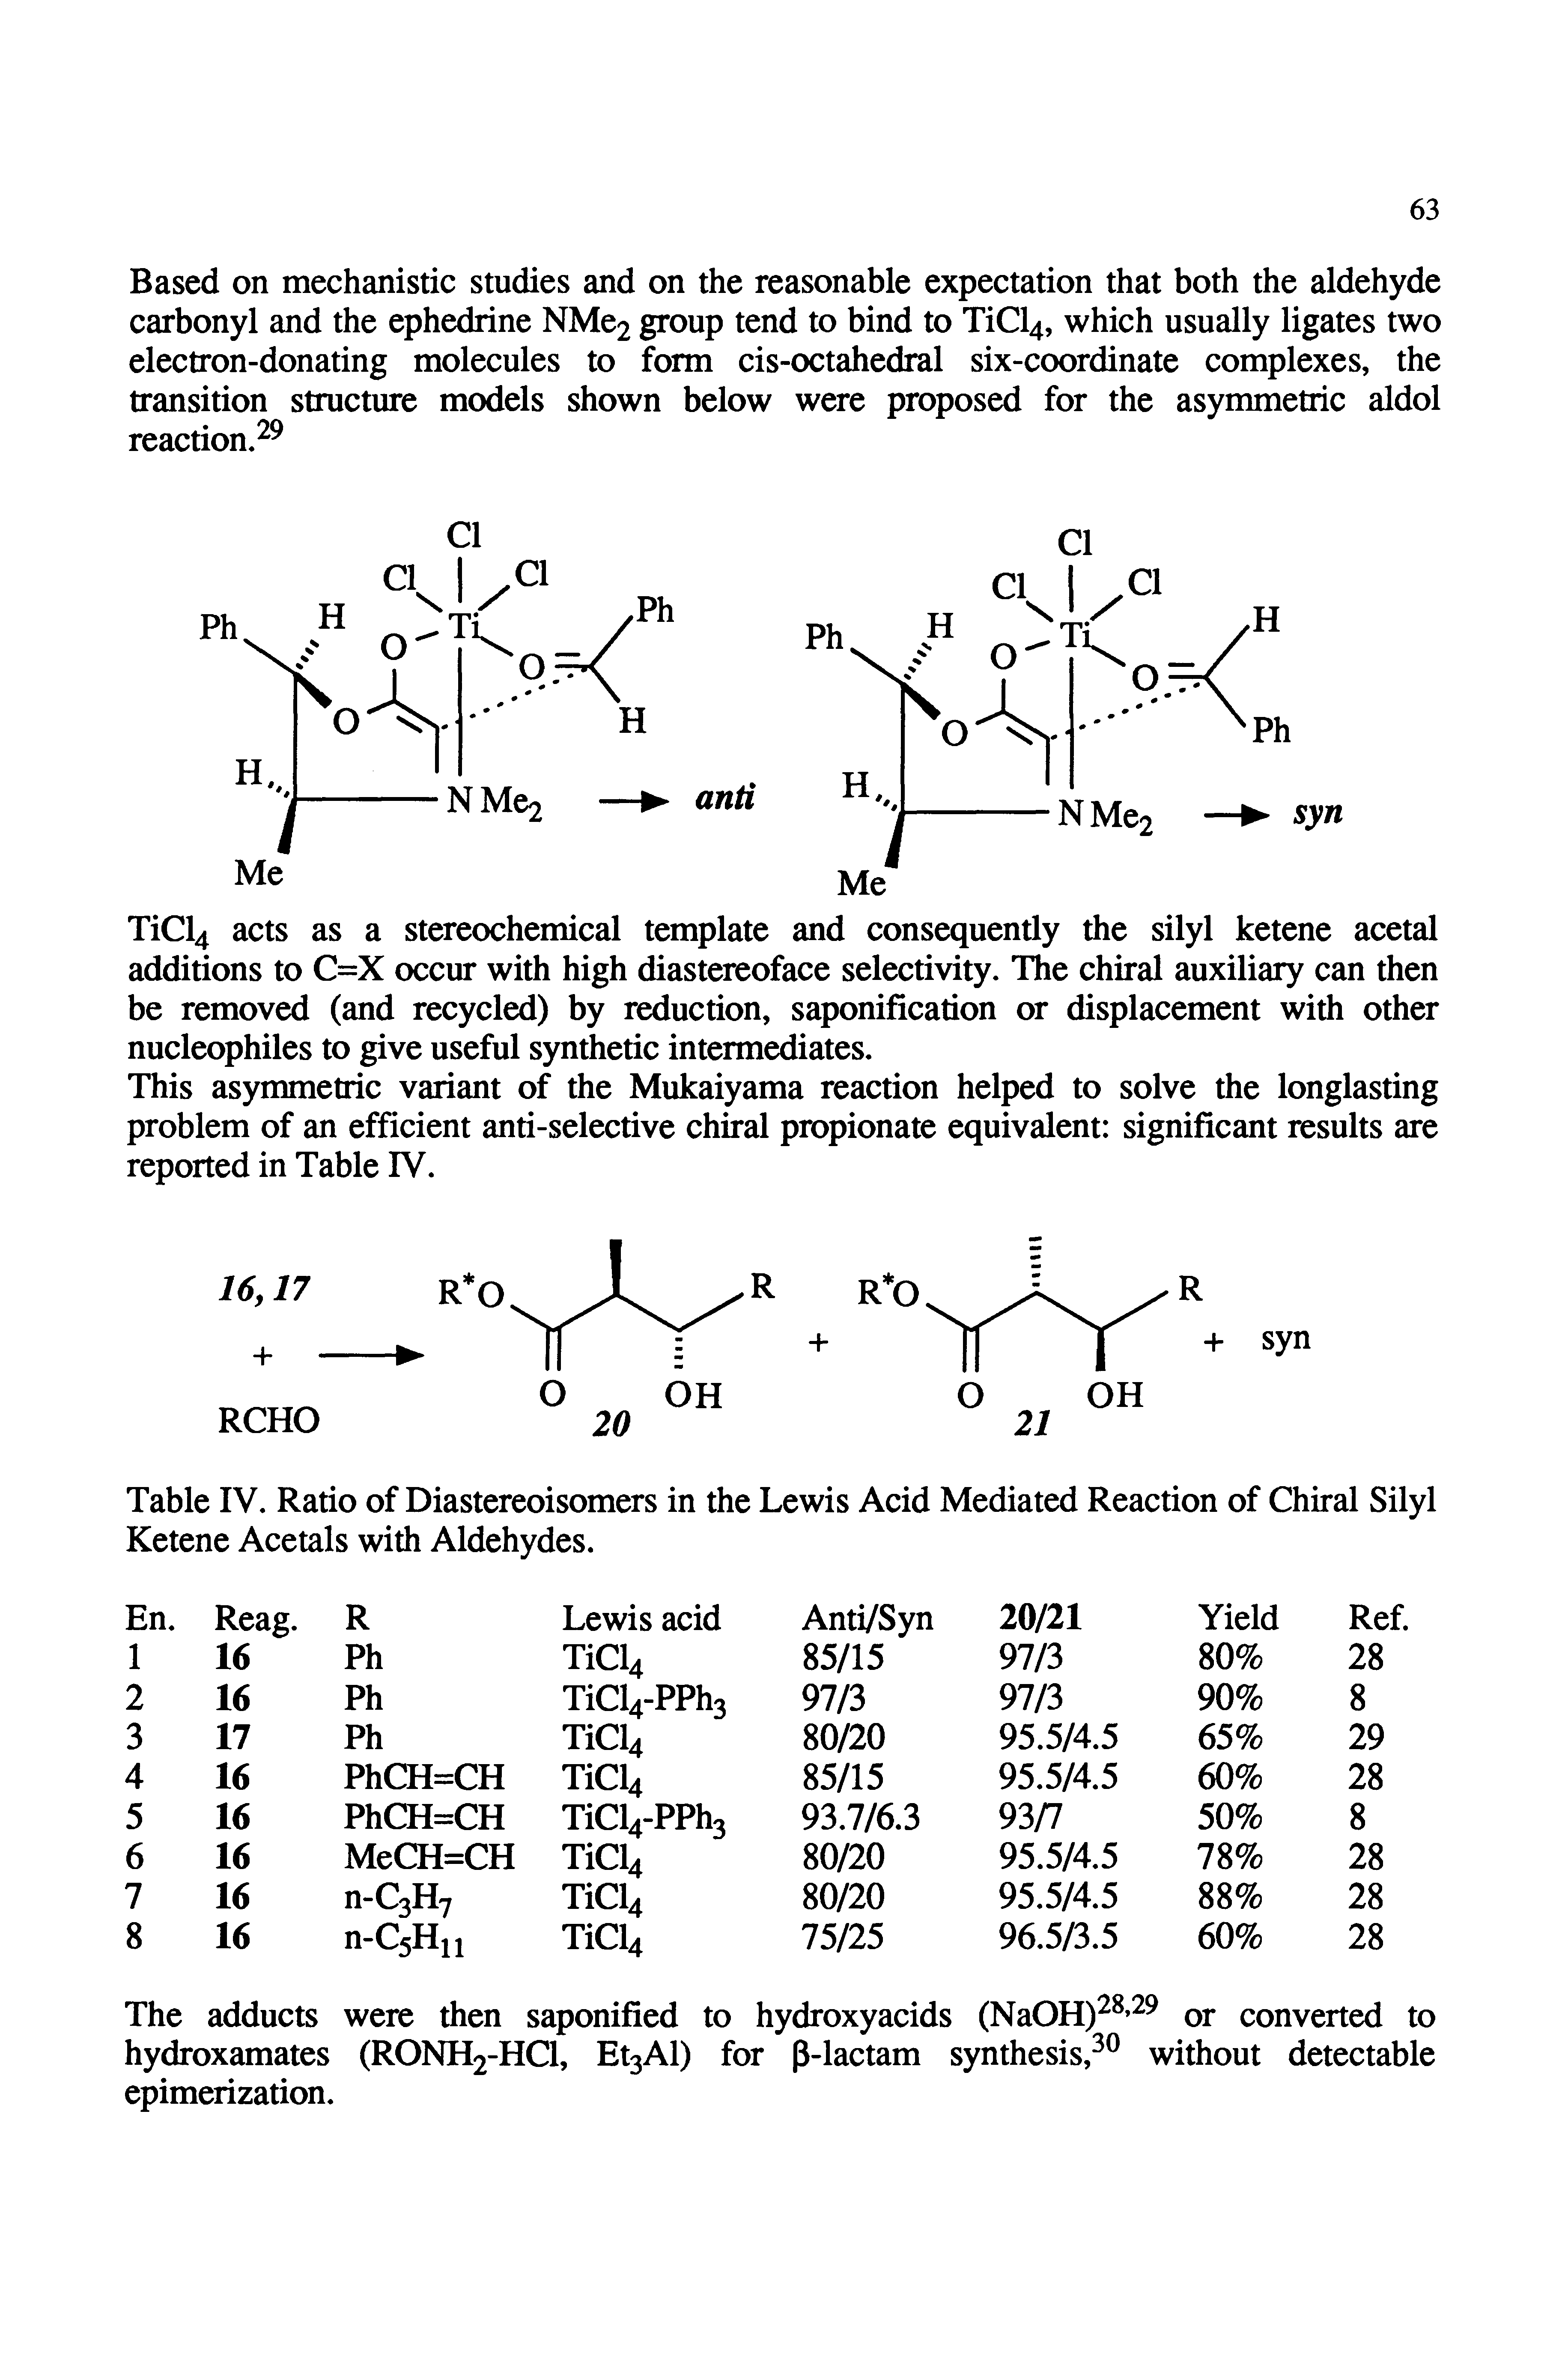 "Table IV. Ratio of Diastereoisomers in the <a href=""/info/lewis_acids_ion_mediated_reactions"">Lewis Acid Mediated Reaction</a> of <a href=""/info/silyl_ketene_acetals_chiral"">Chiral Silyl Ketene Acetals</a> with Aldehydes."